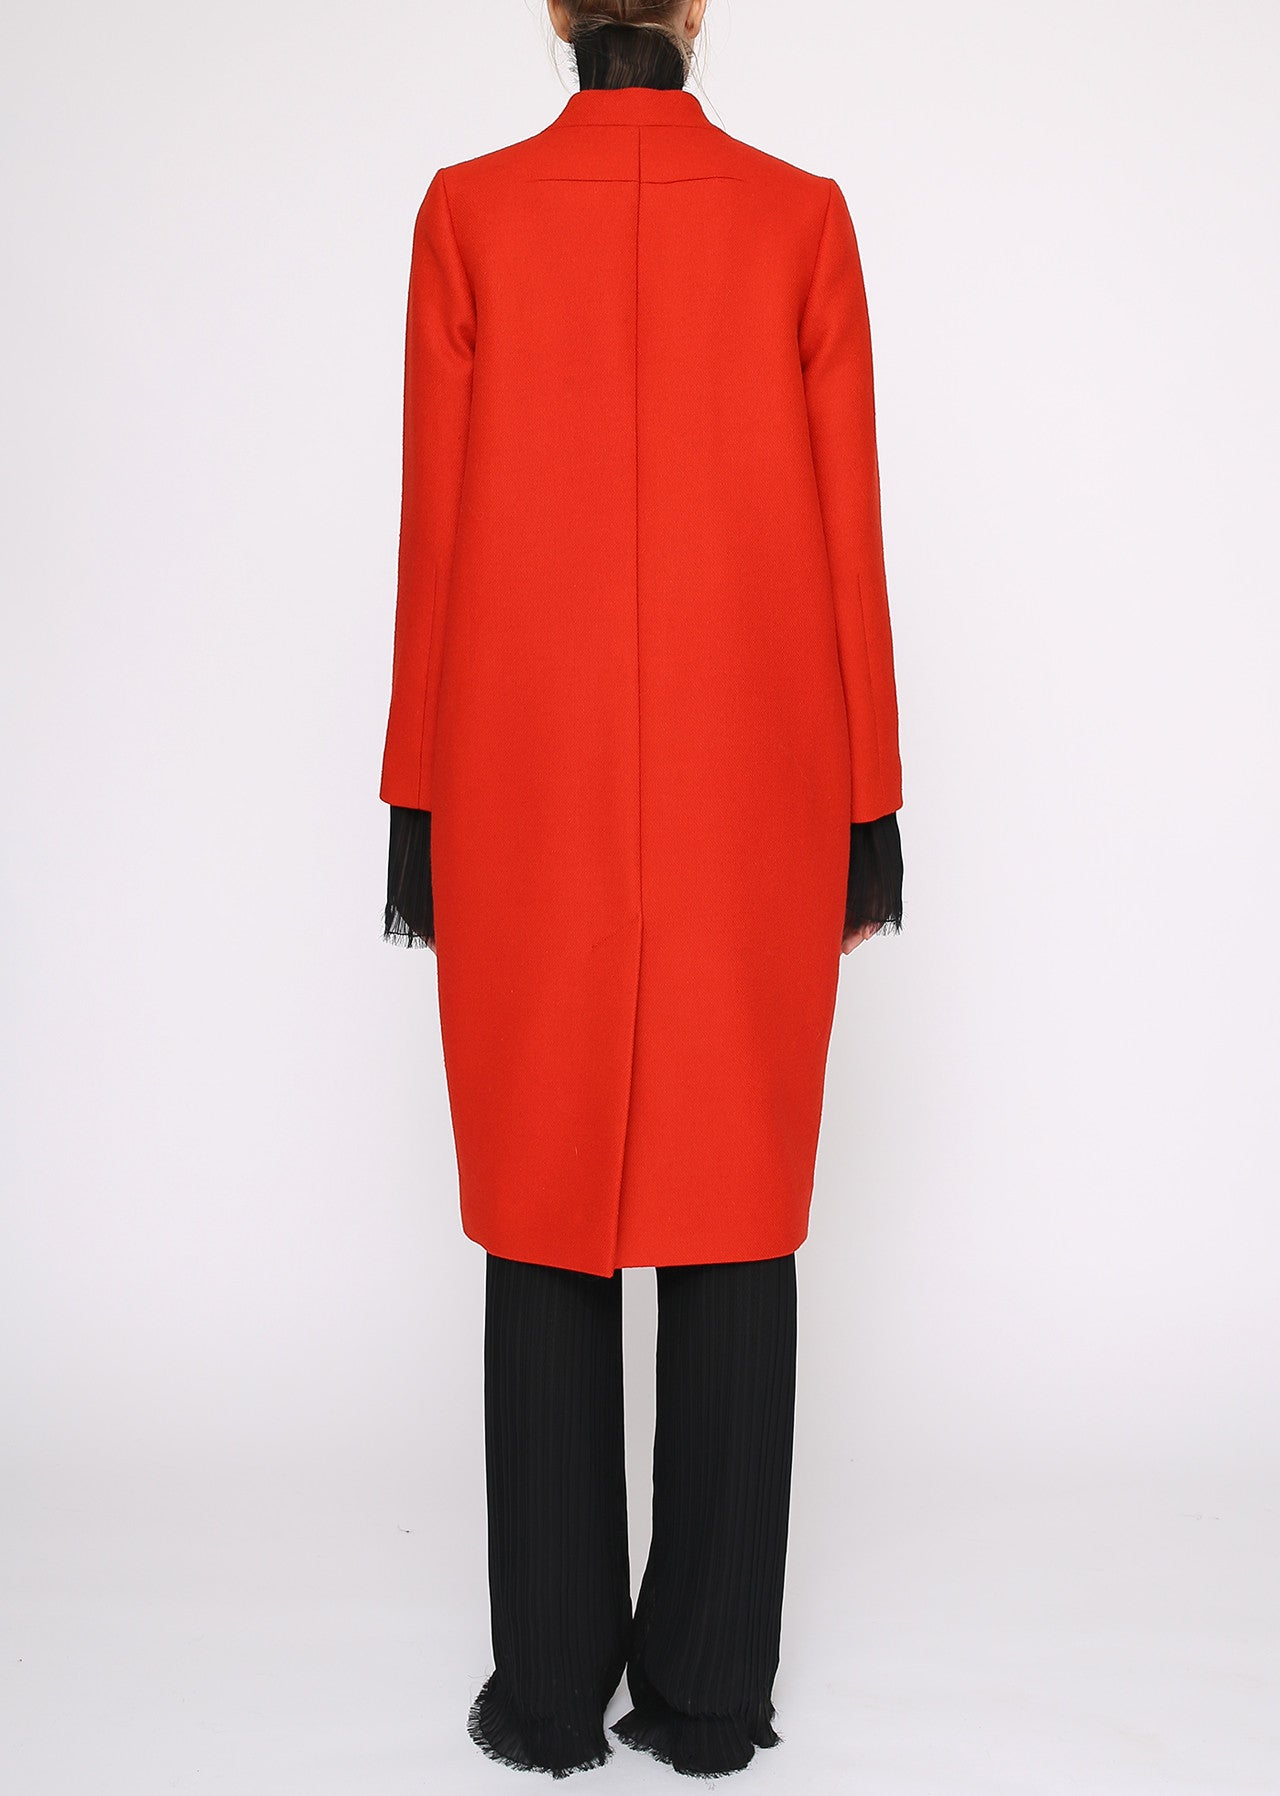 Tailored Orange Wool Long Coat